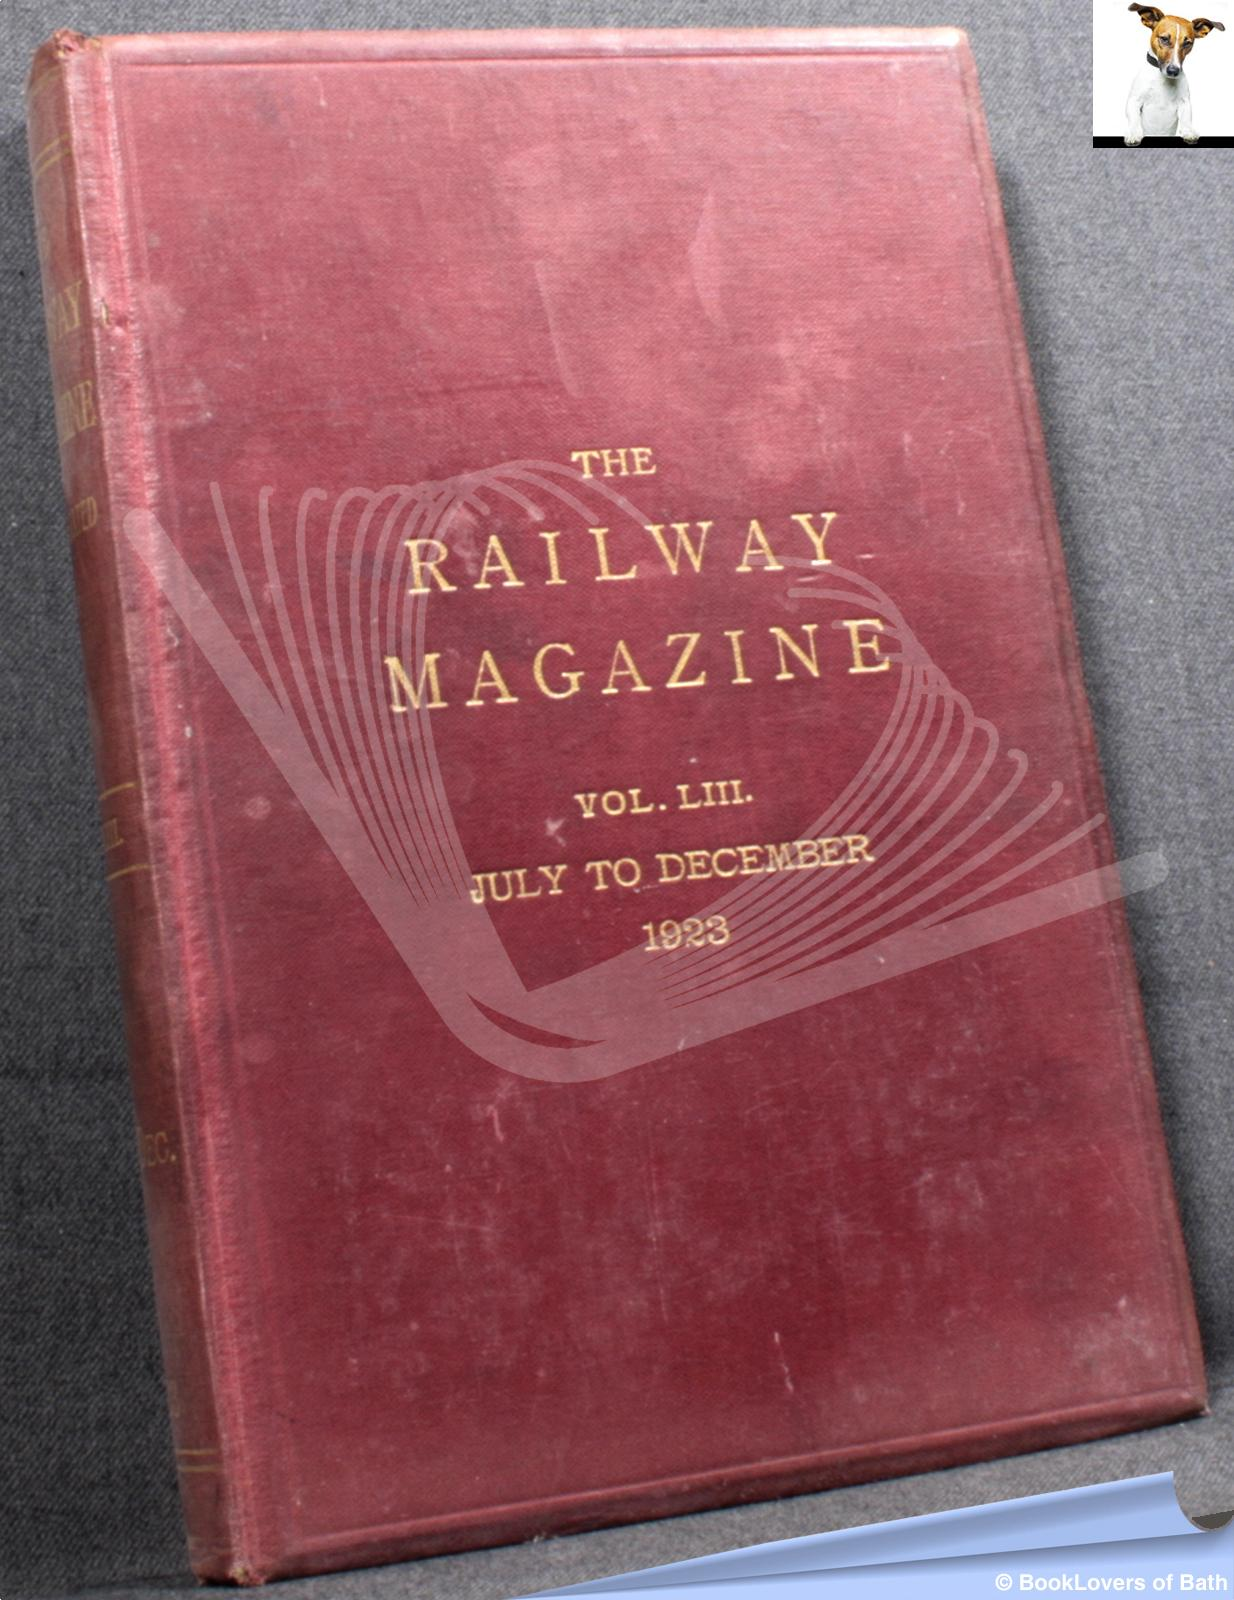 The Railway Magazine Vol. LIII July to December 1923 - Anon.